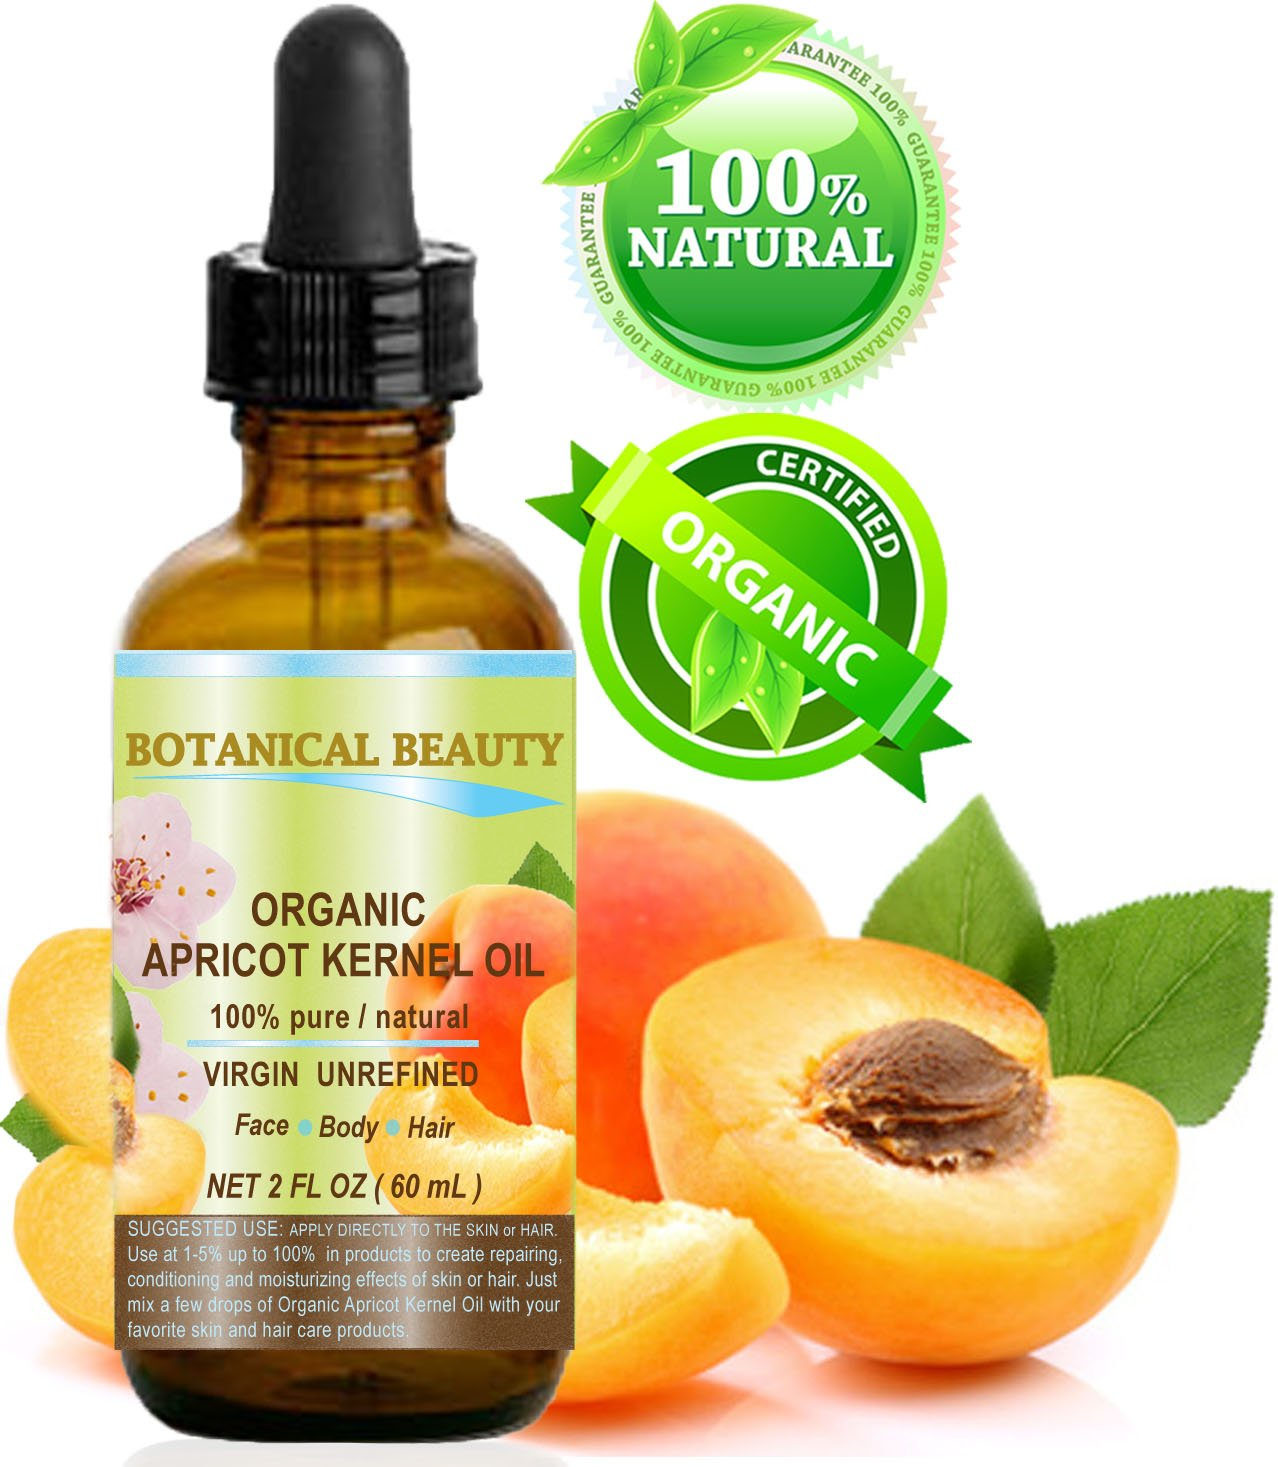 ORGANIC APRICOT KERNEL OIL Australian. 100% Pure / Virgin / Unrefined Cold Pressed Carrier Oil. 2 oz-60 ml. For Face, Hair and Body by Botanical Beauty